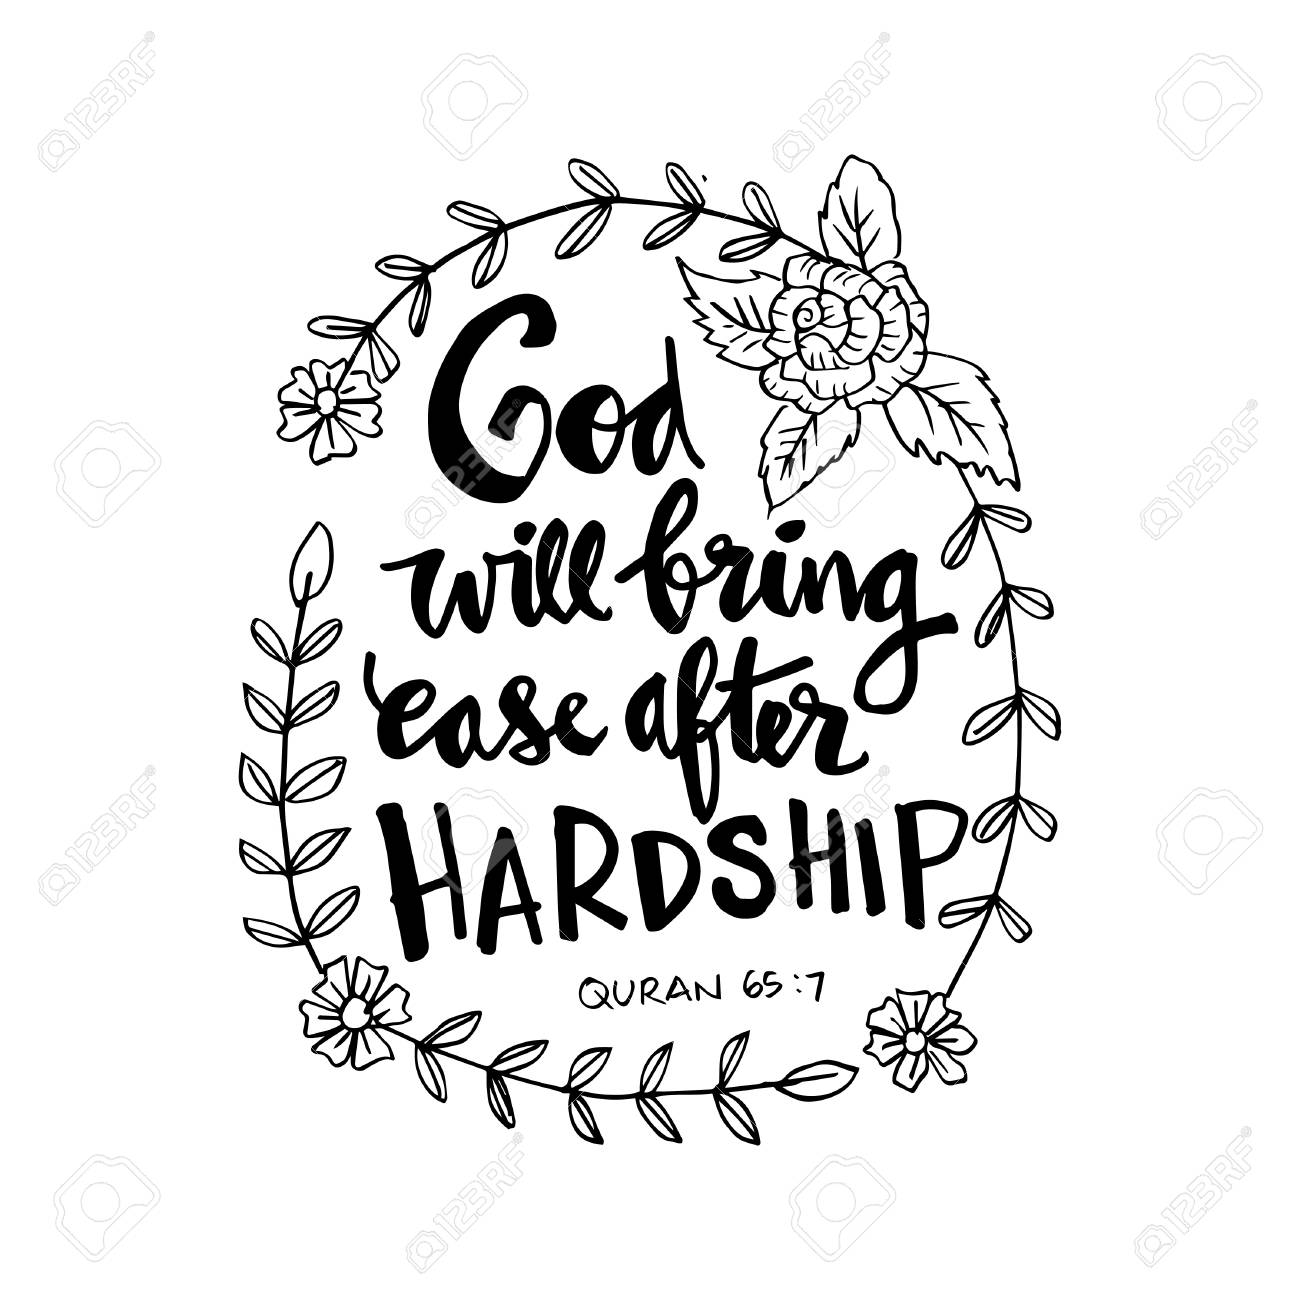 god will bring ease after hardship quote quran hand lettering